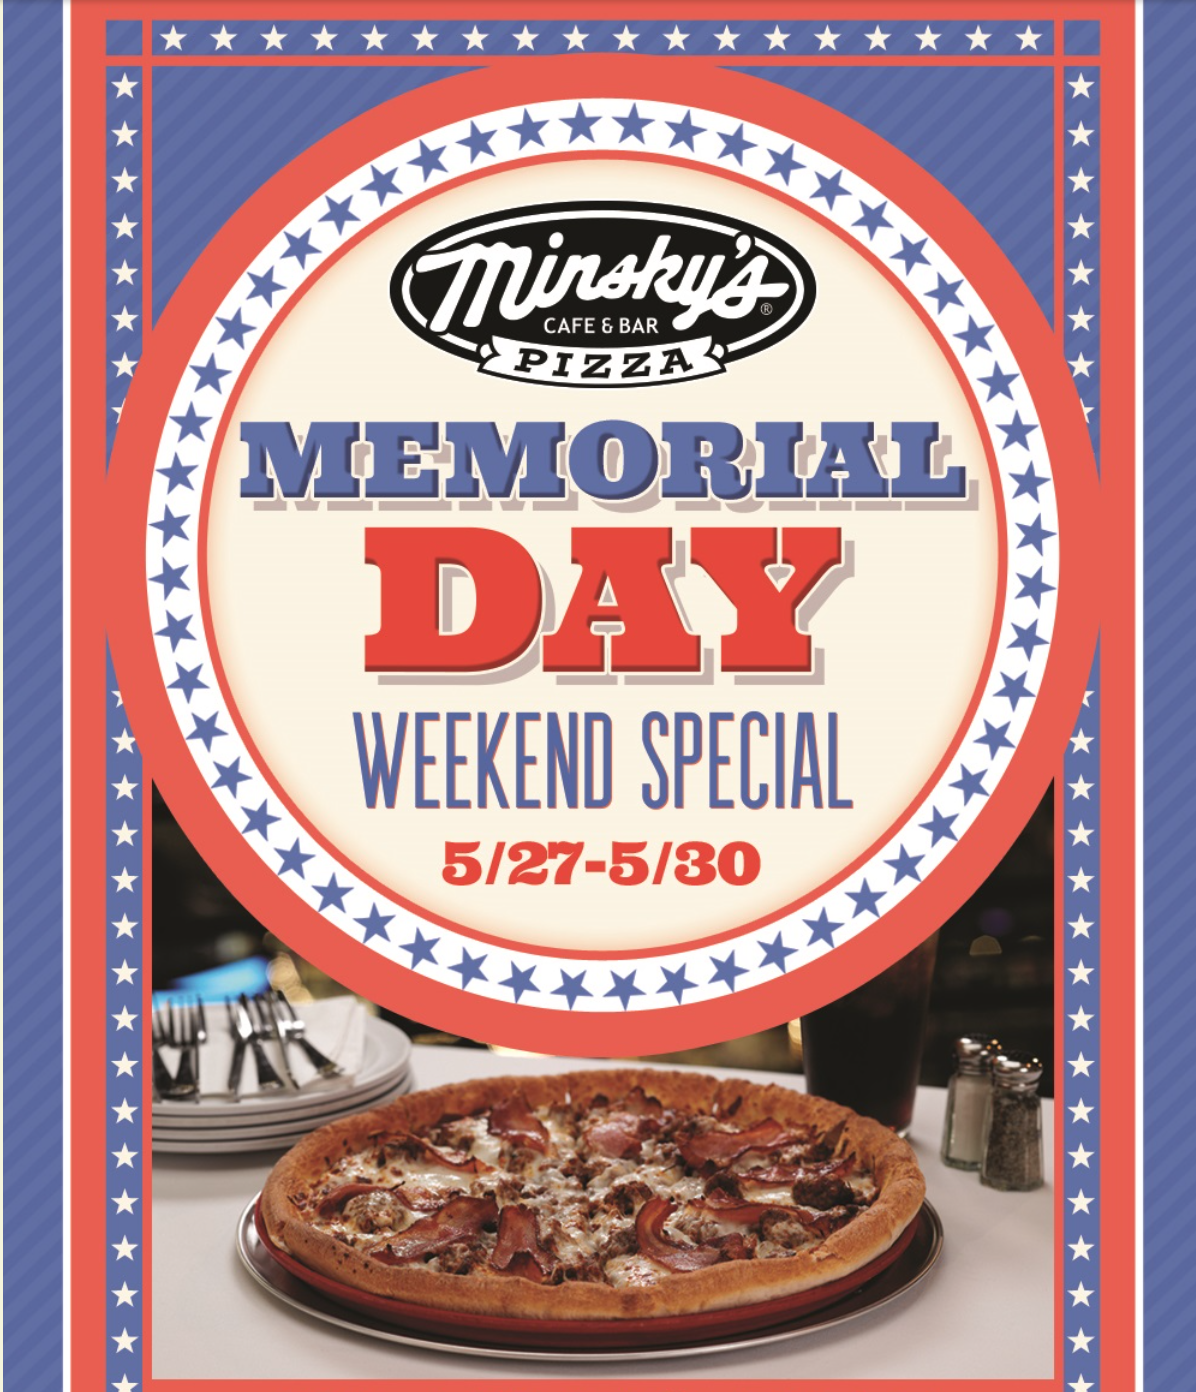 Minsky's Memorial Day Special